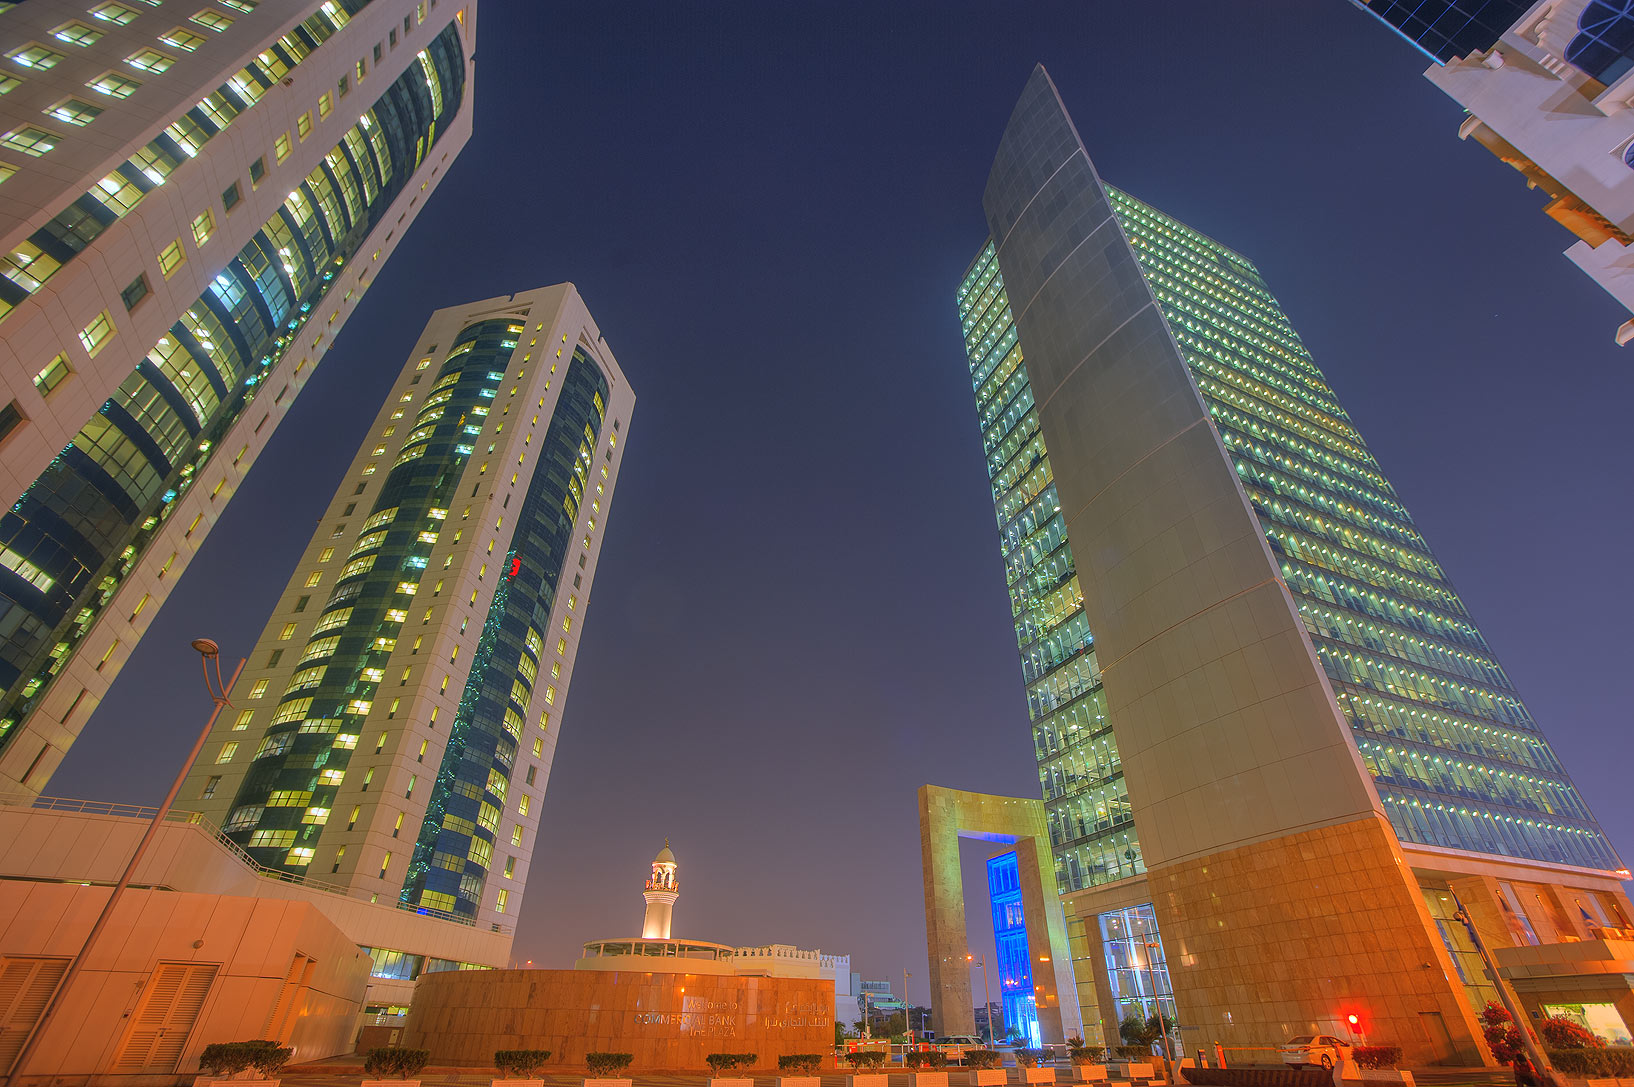 IctQatar and Commercial Bank Towers. Doha, Qatar